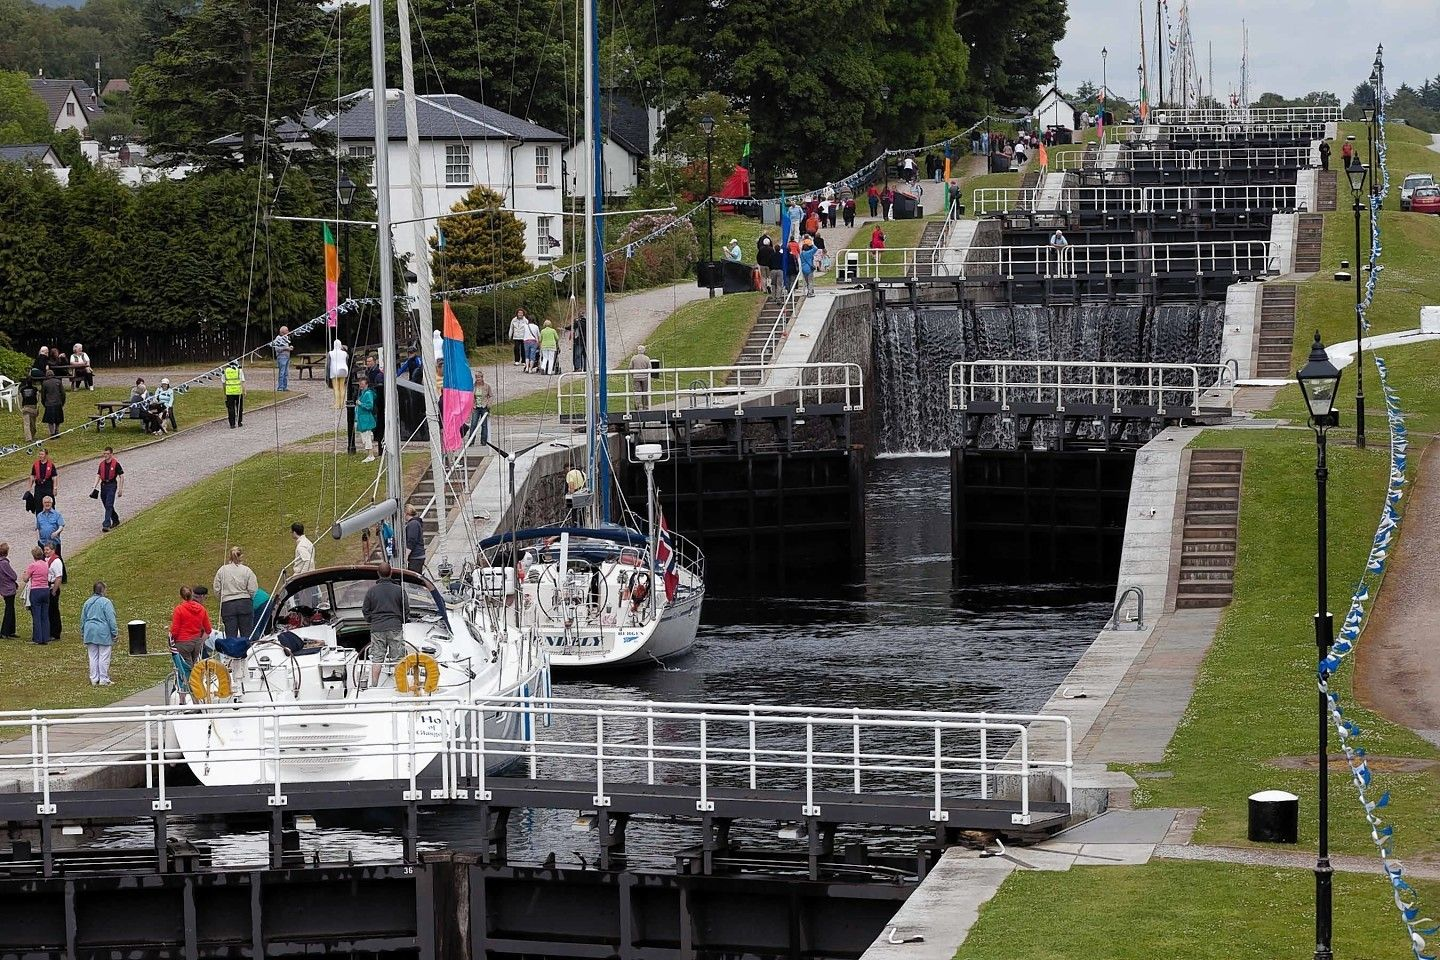 Neptune S Staircase Is A Staircase Lock Comprising Eight Locks On